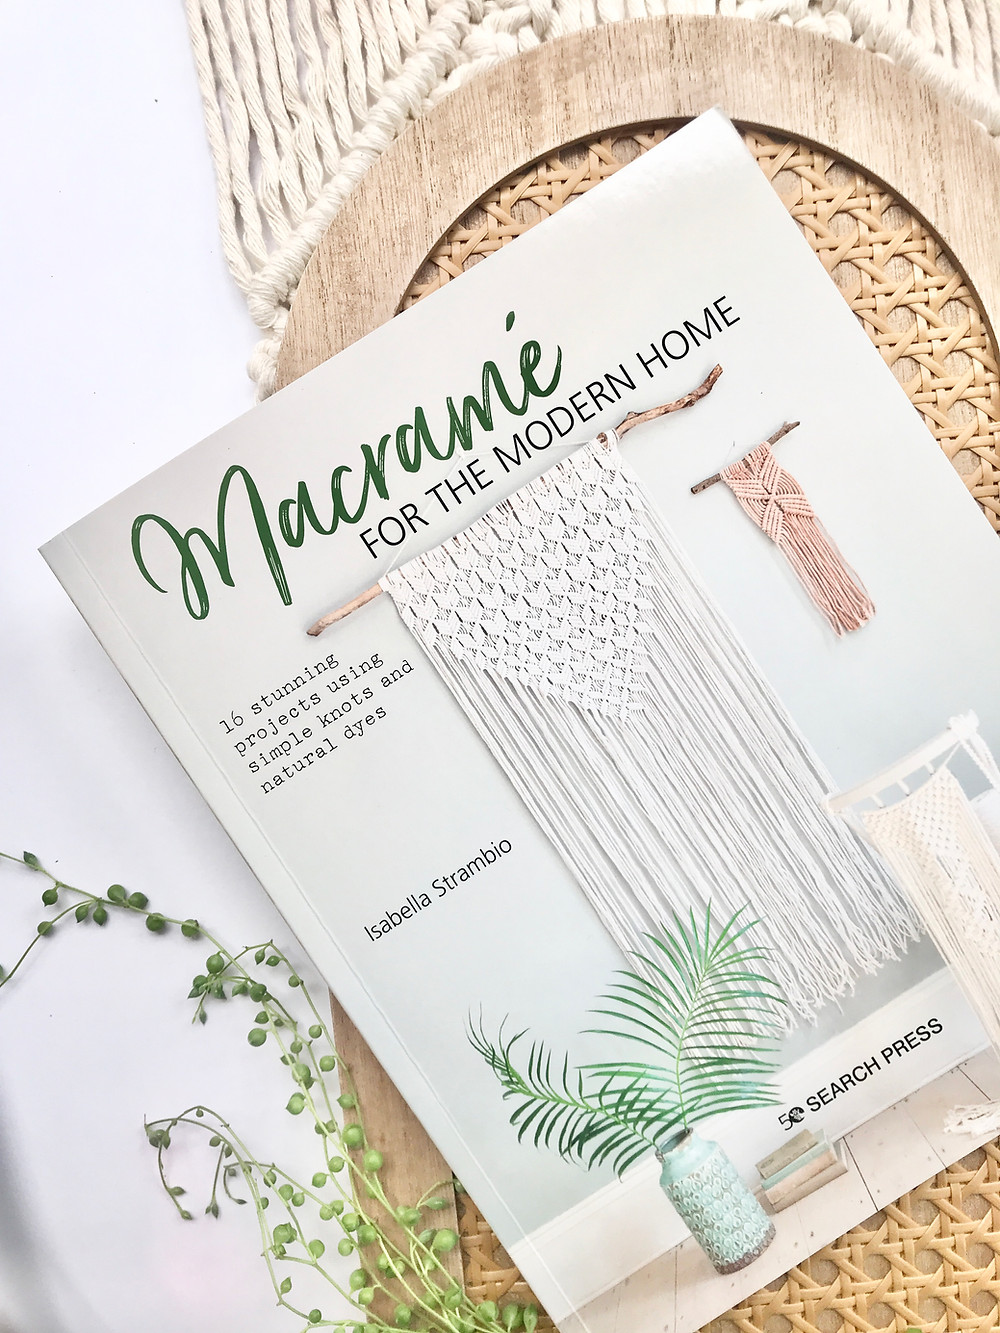 Macrame for the modern home book cover